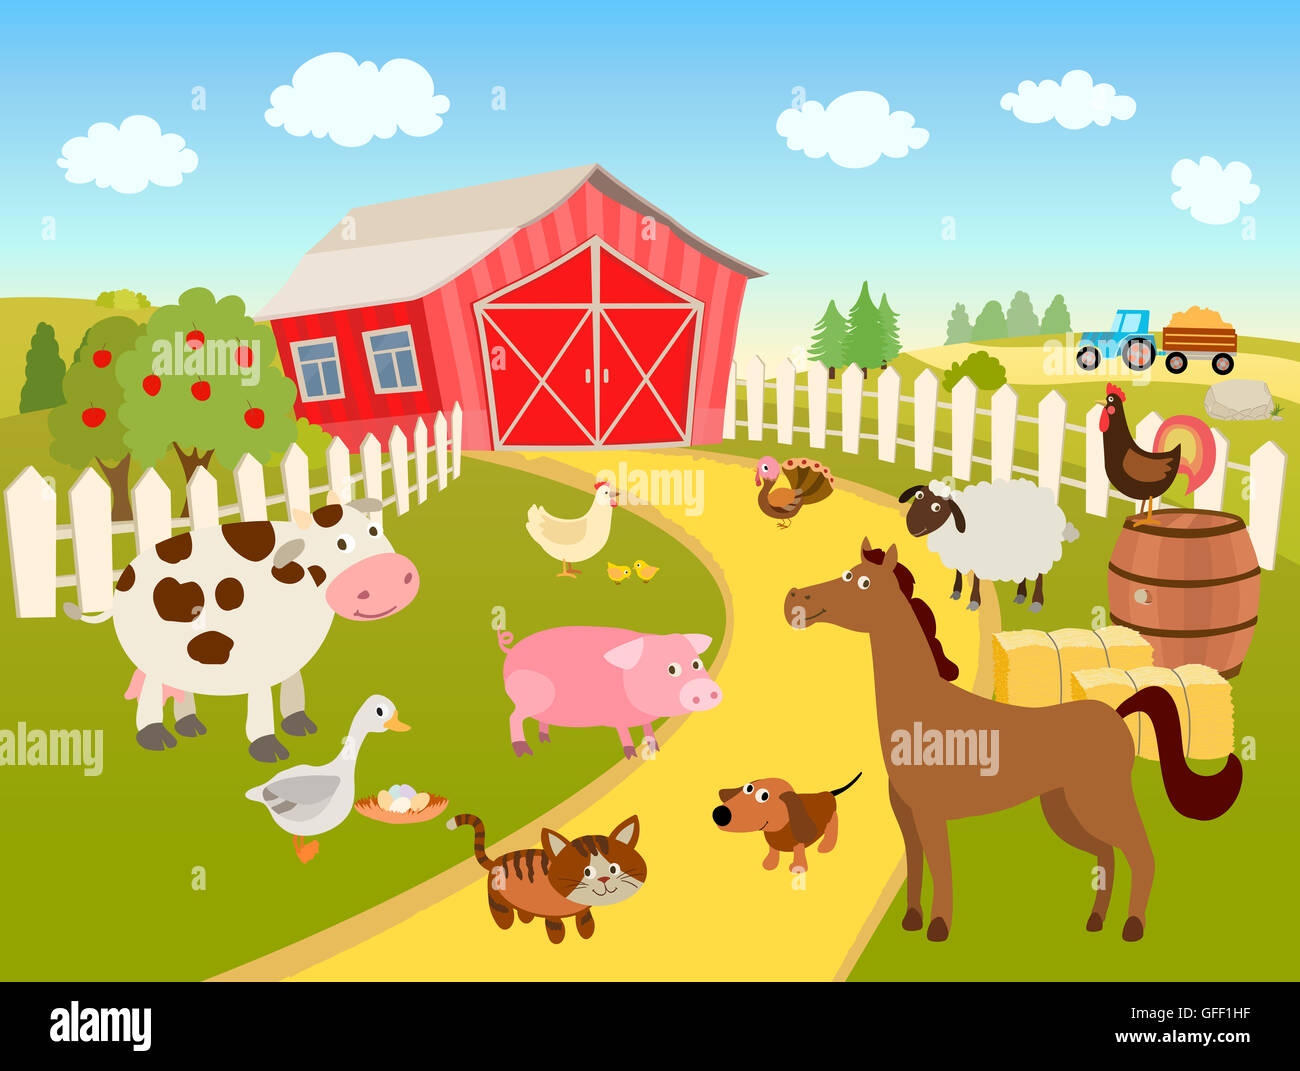 Farm Animals And Items And A Farm House Stock Photo 112812603 Alamy